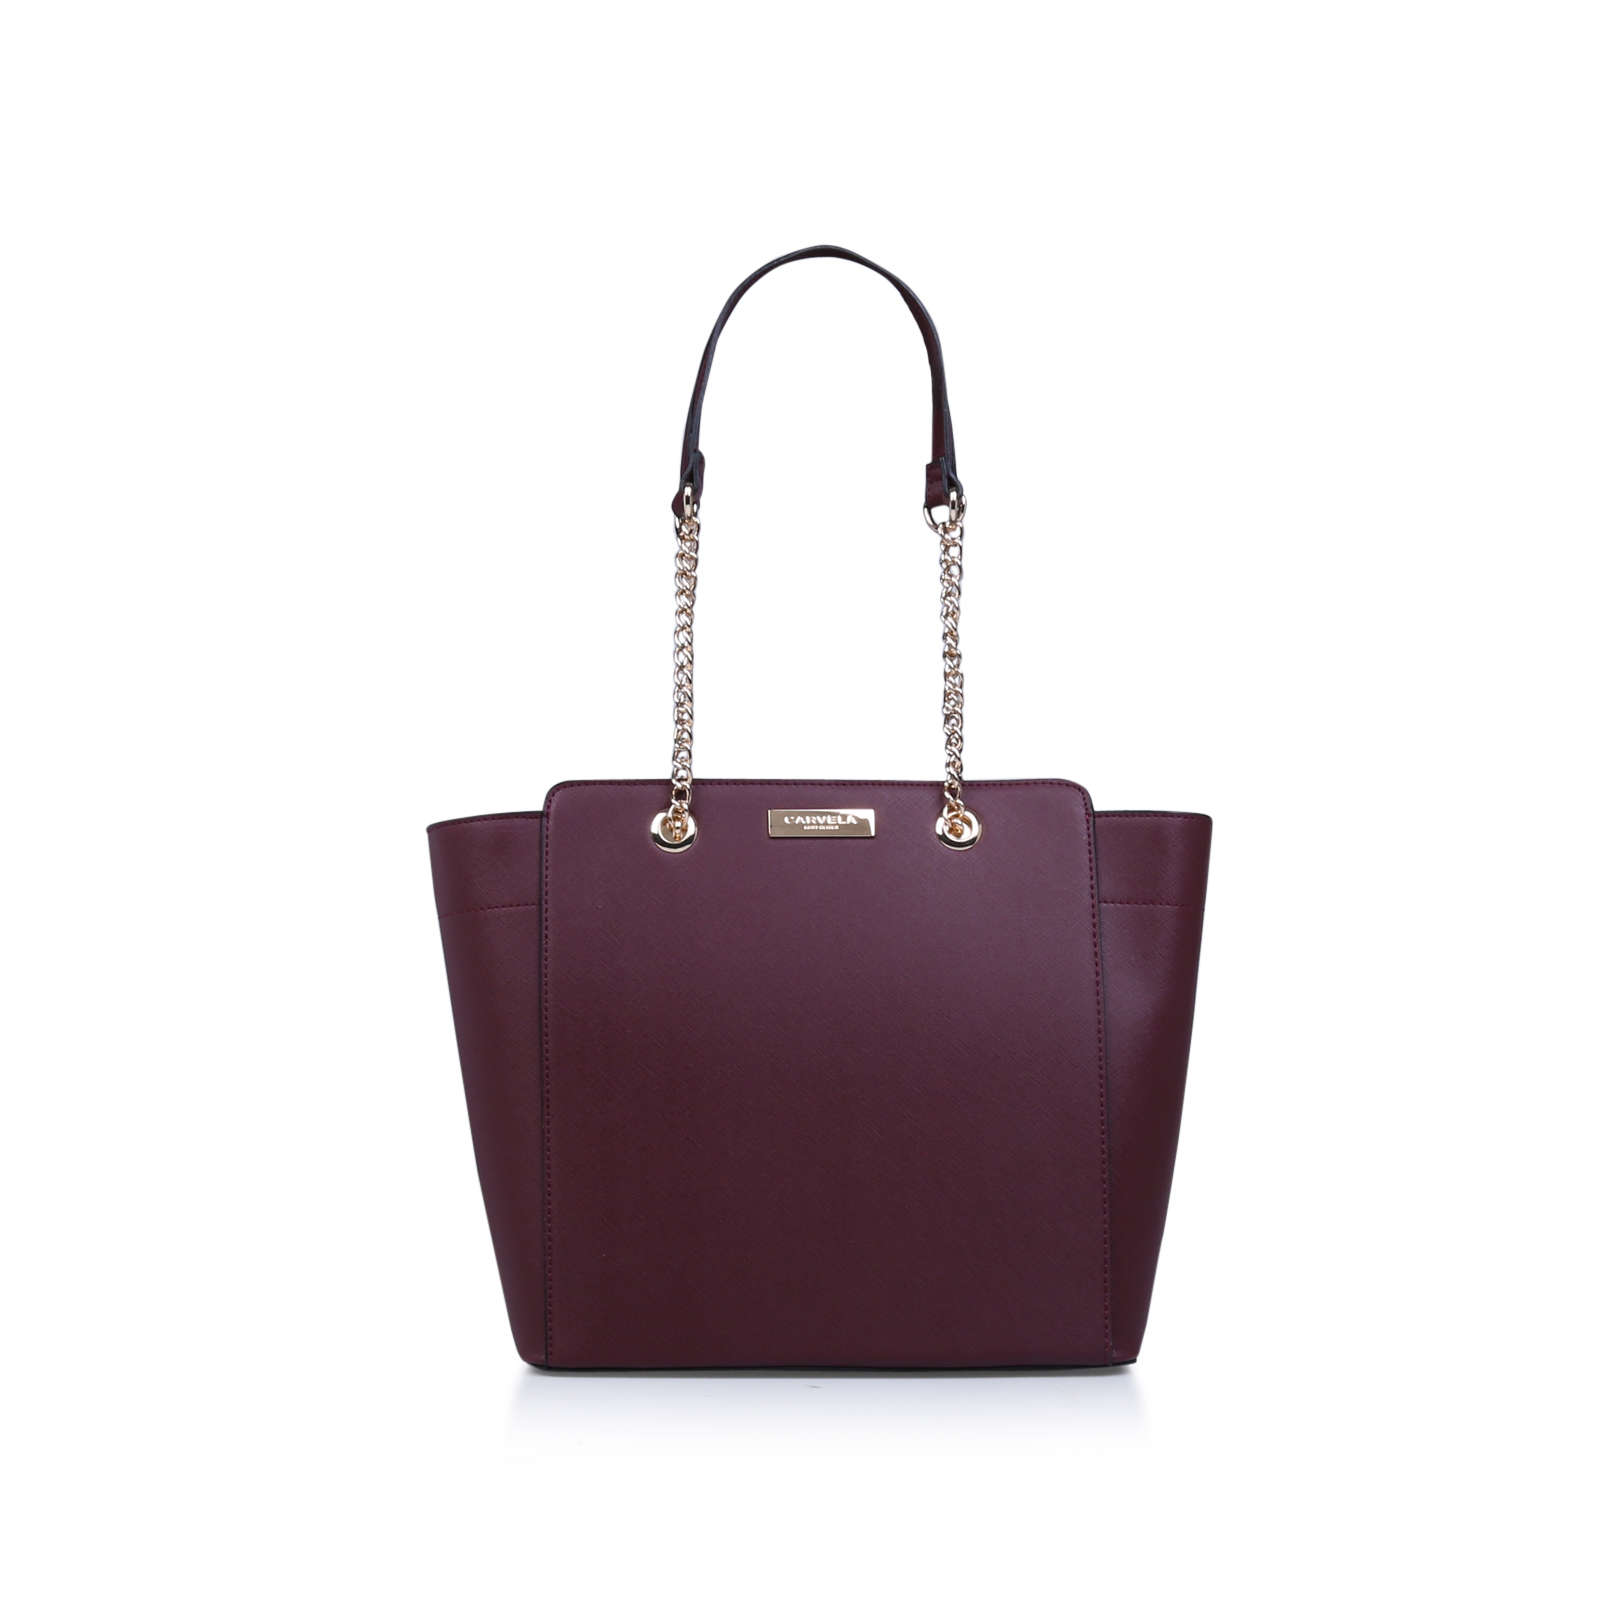 RATE TOTE WITH PART CHAIN